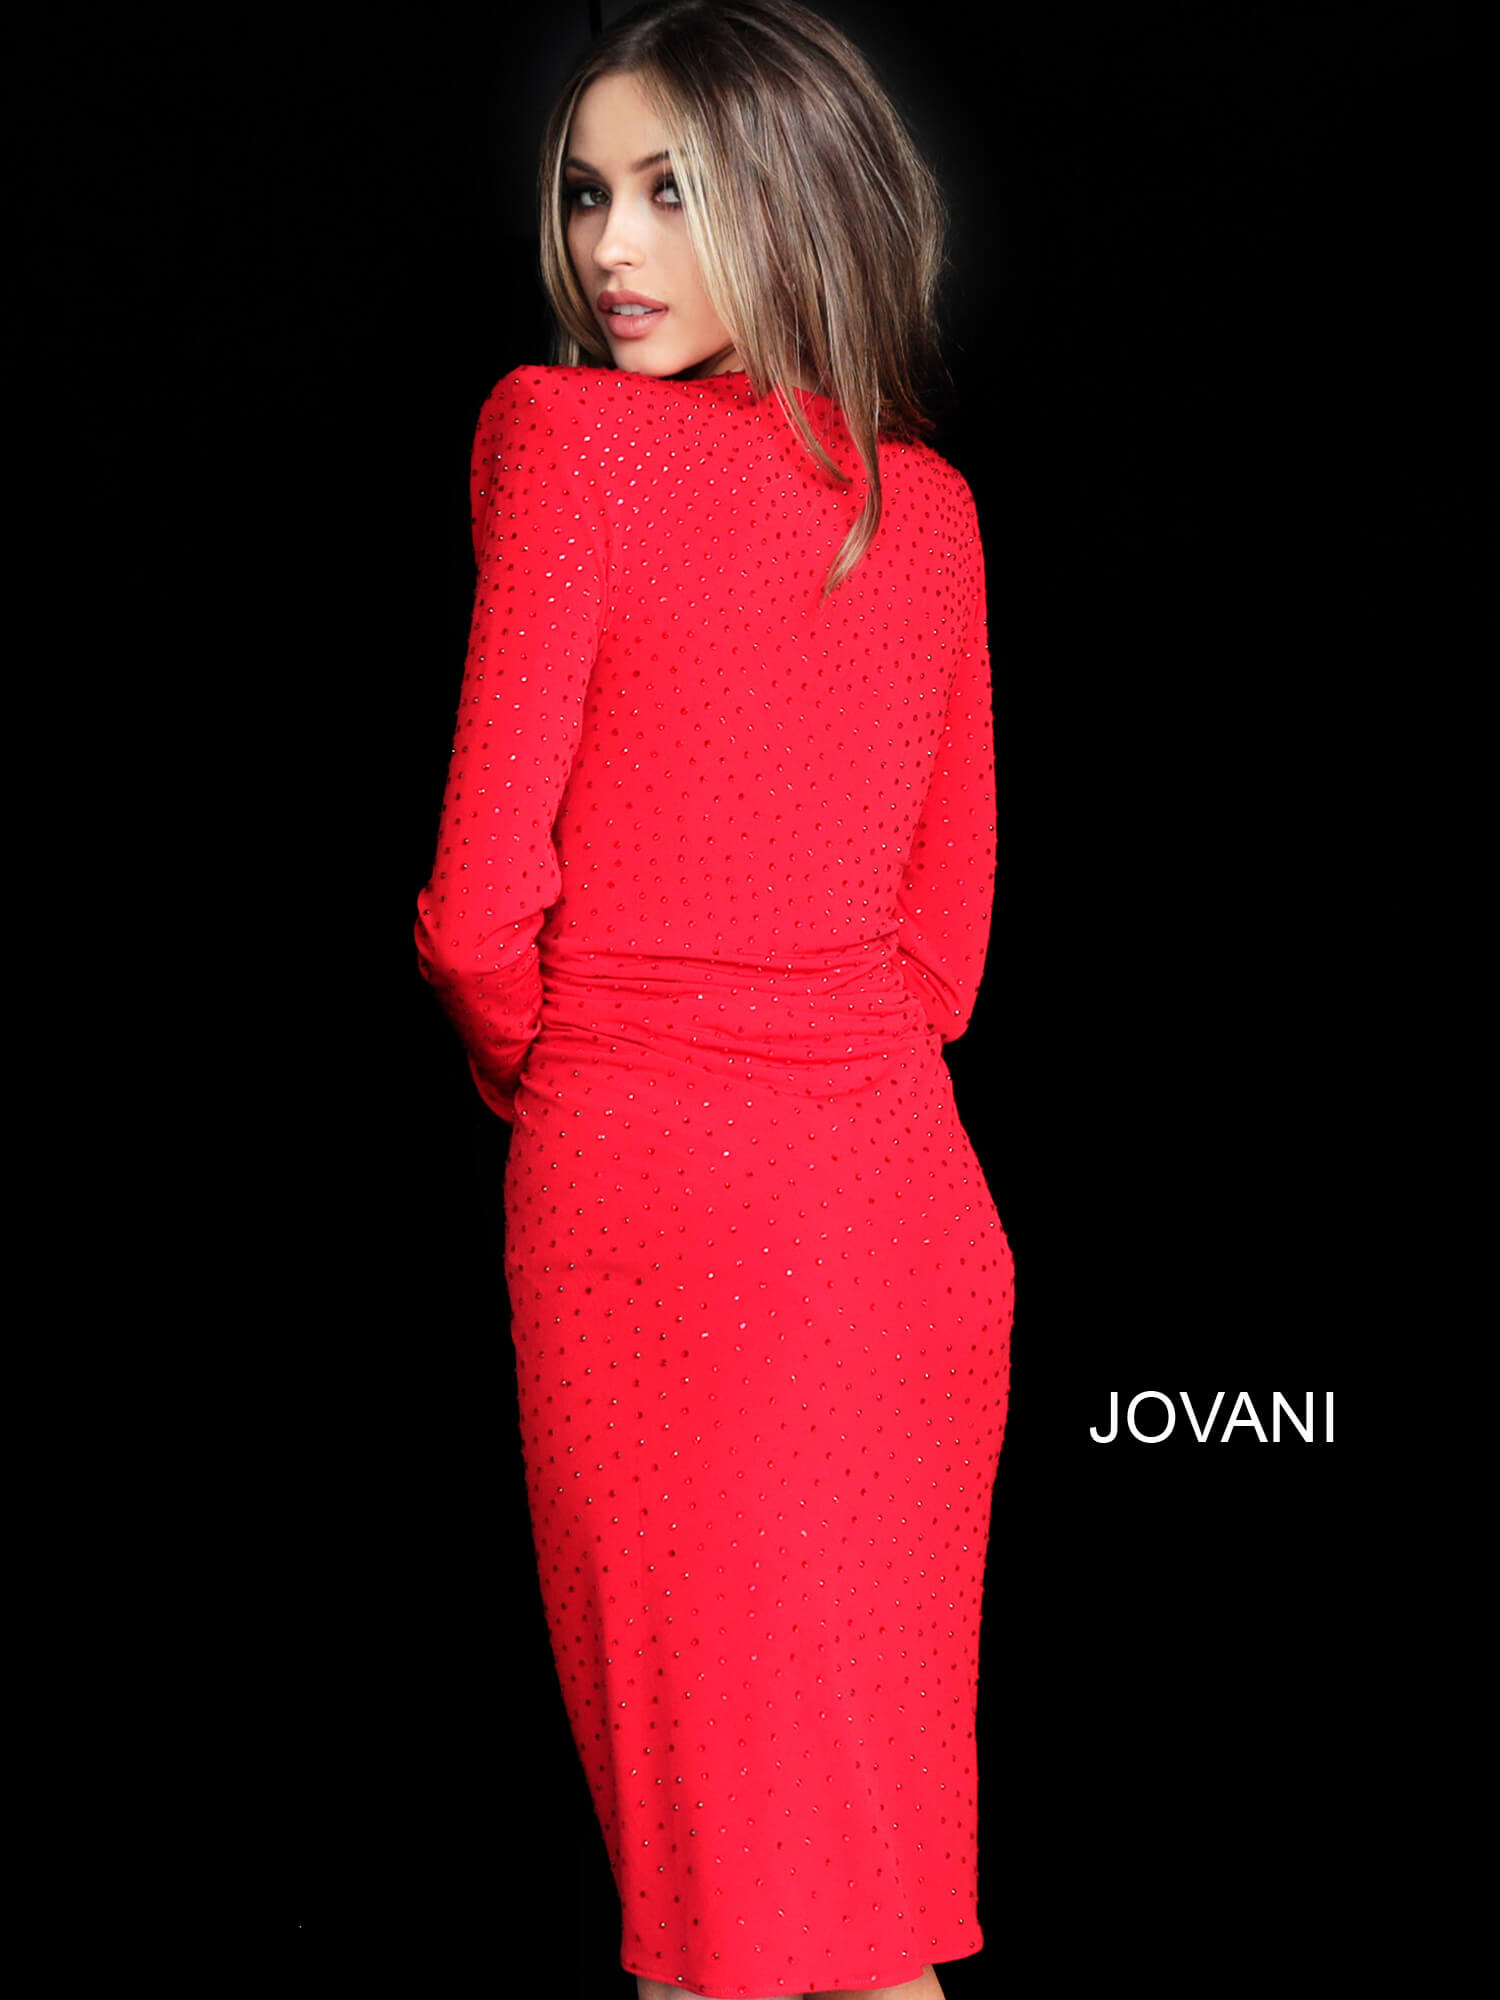 Jovani red ruched beaded cocktail dress 3059 on mobile 3